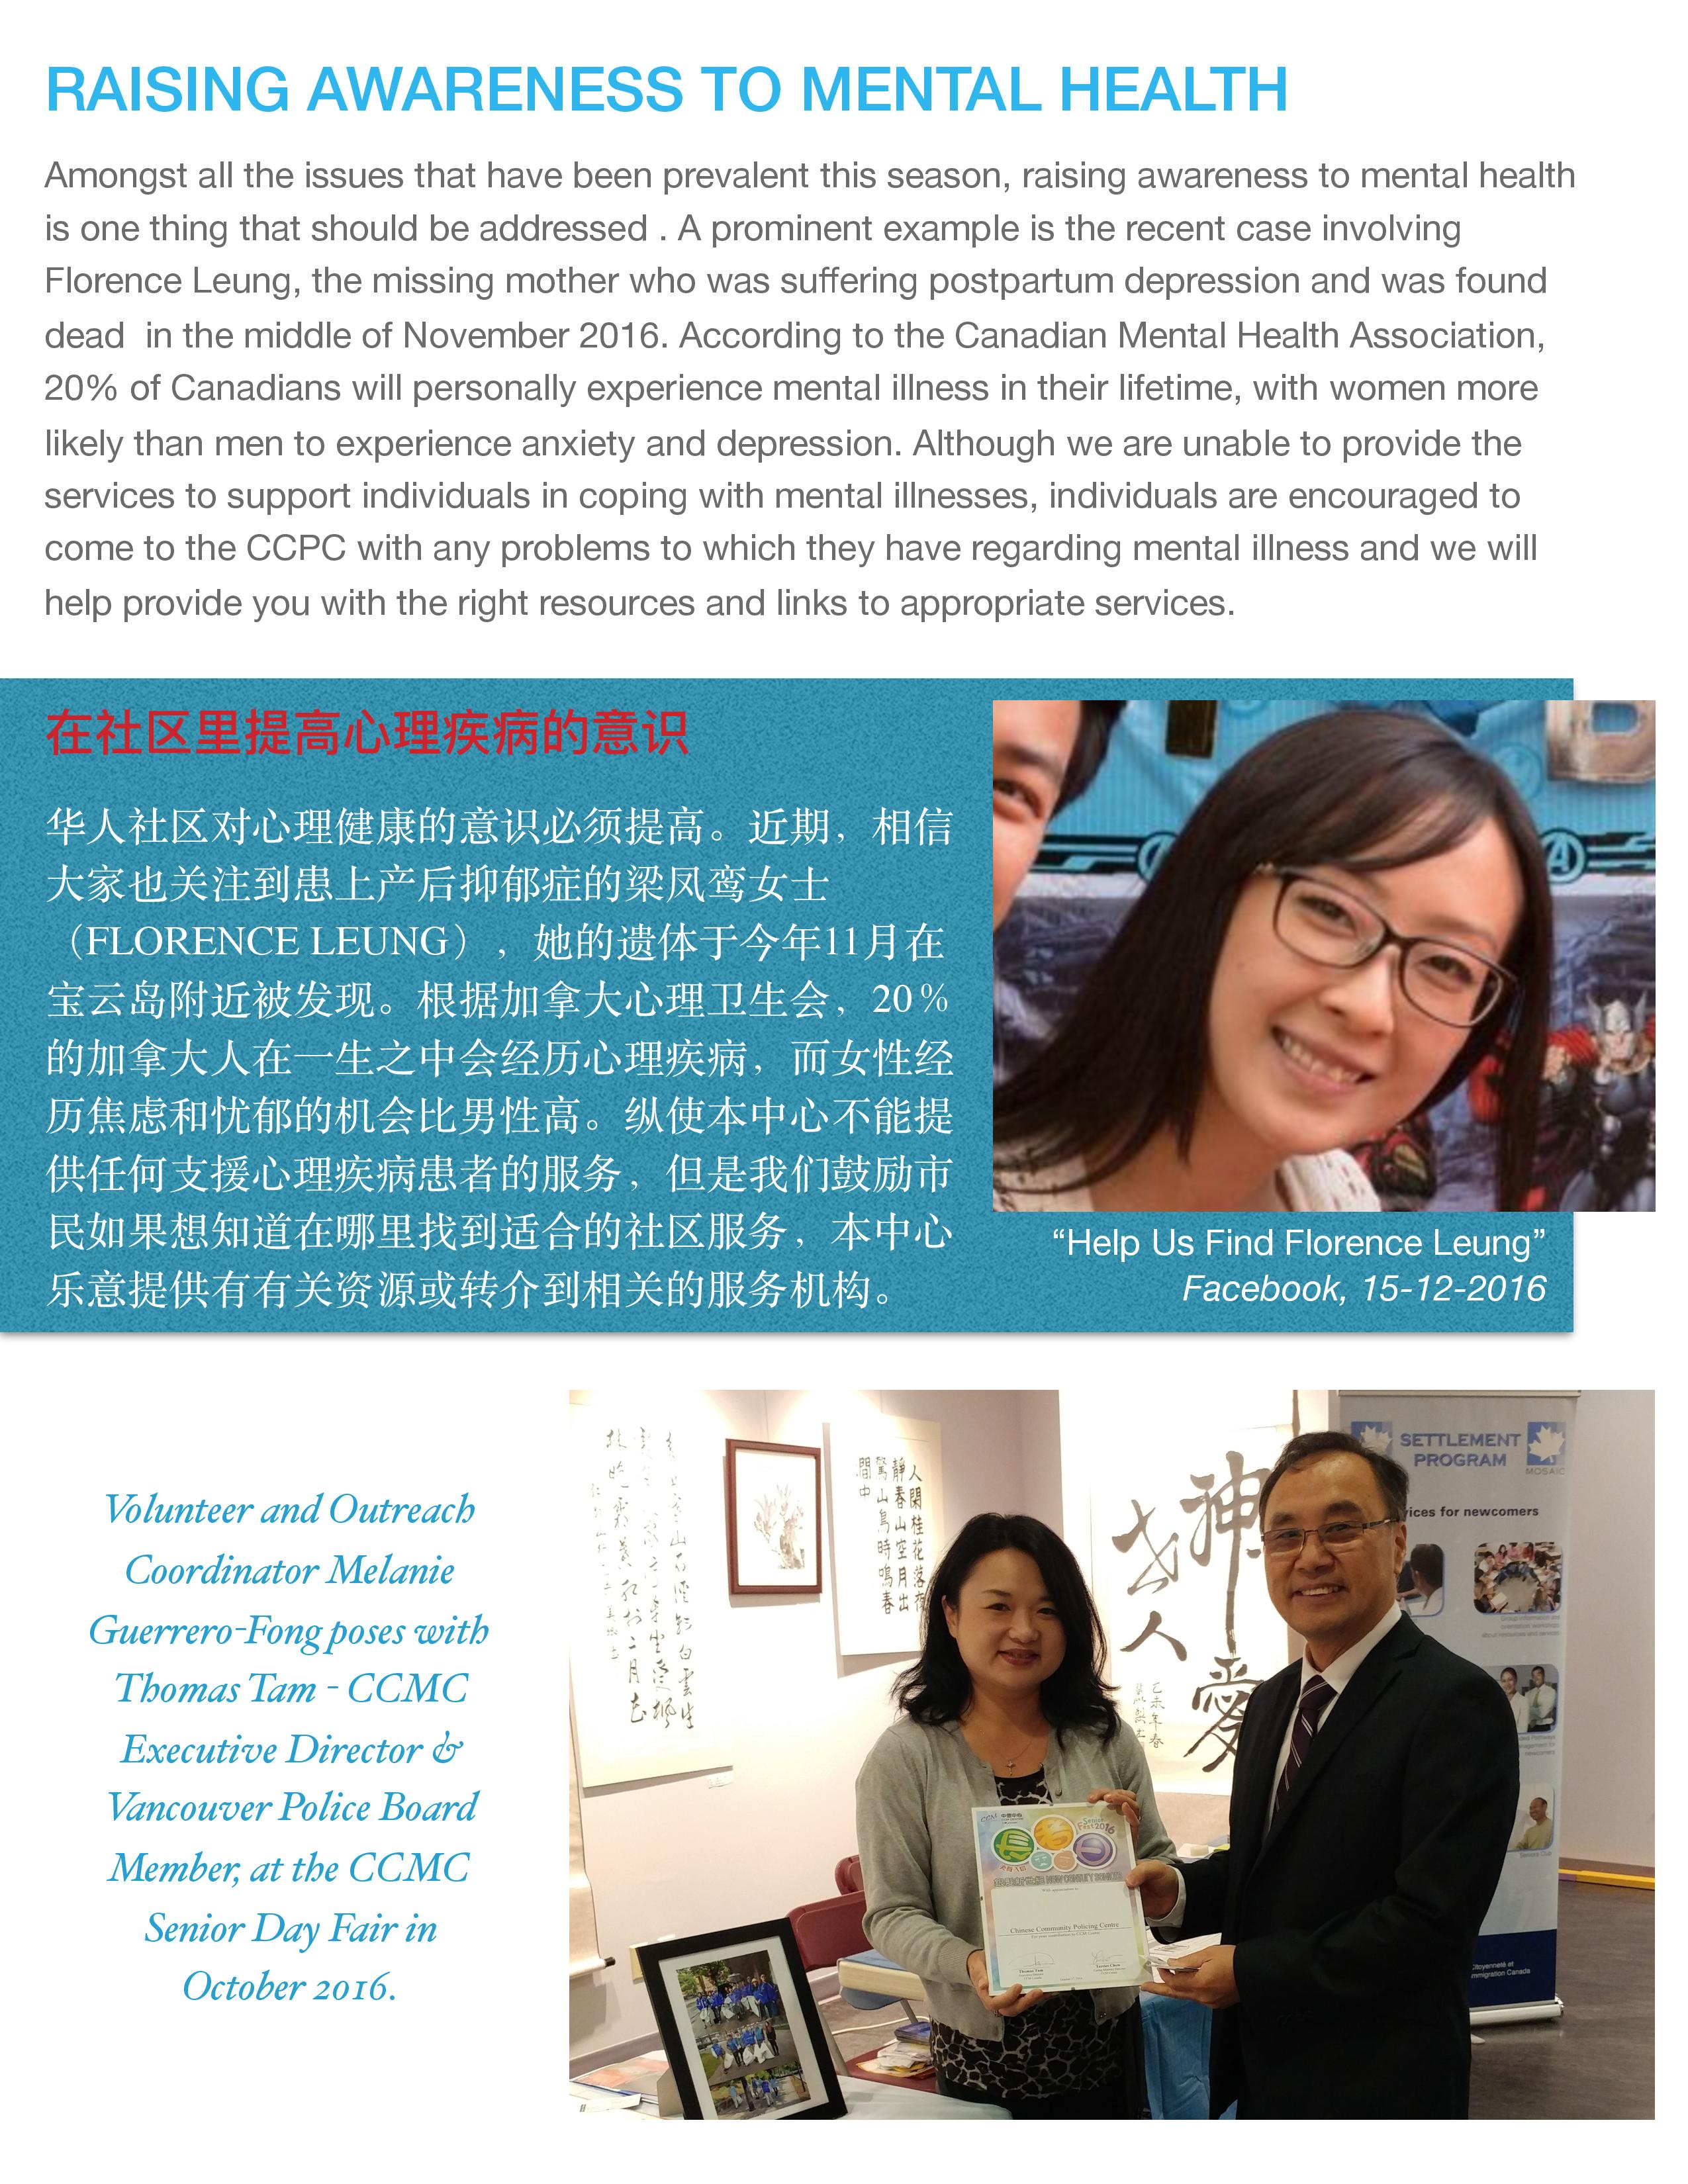 CCPC_Winter_Newsletter_Simplified_Chinese_Edition_-page-005